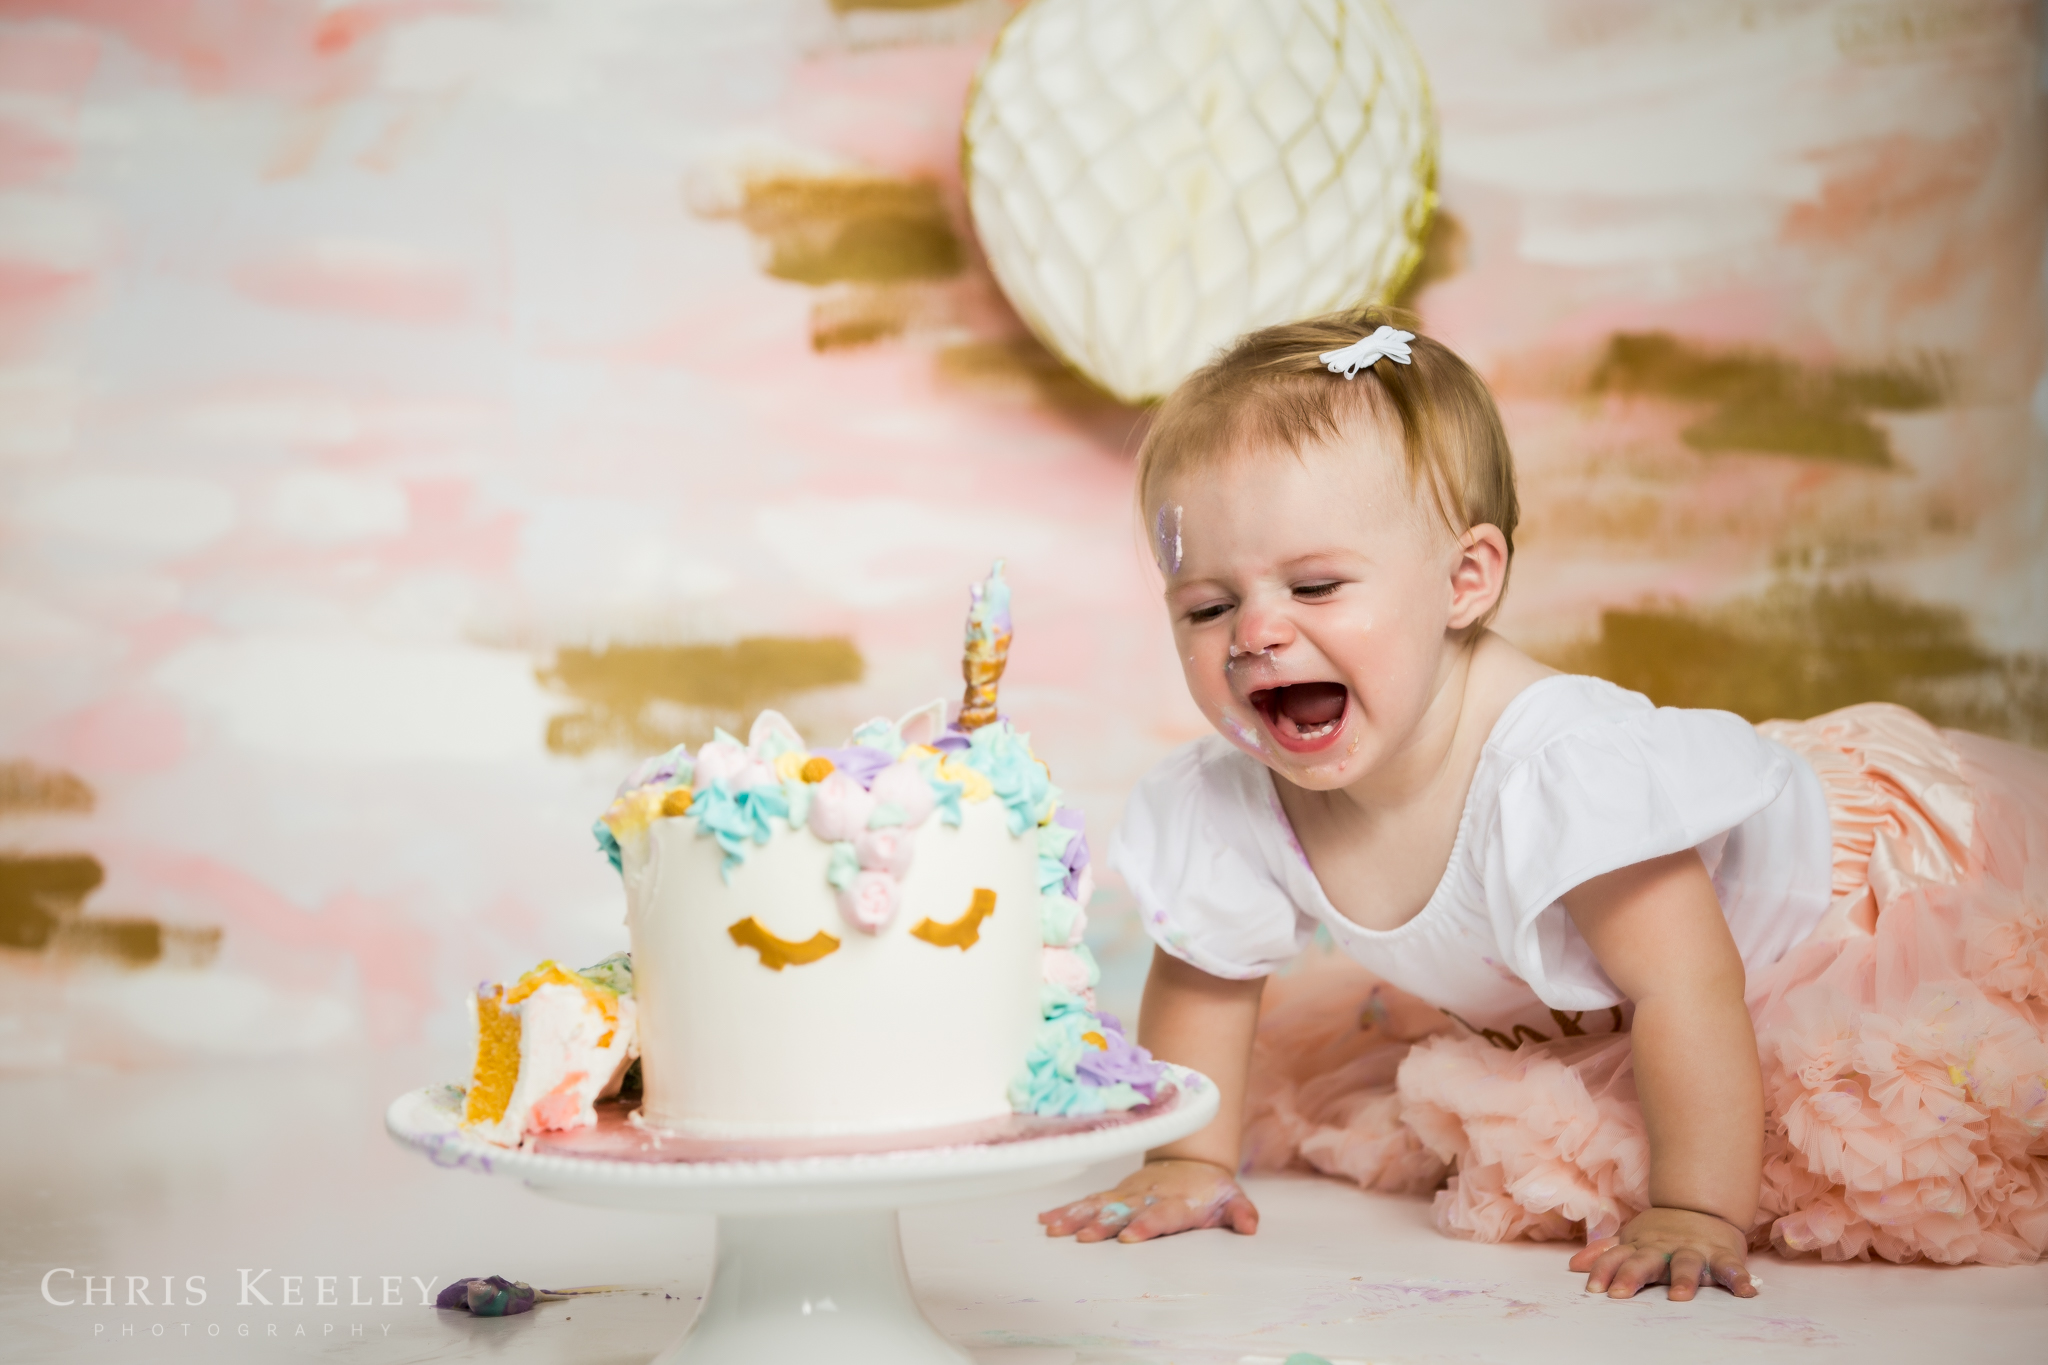 gwendolyn-one-year-cake-smash-dover-new-hampshire-photographer-19.jpg